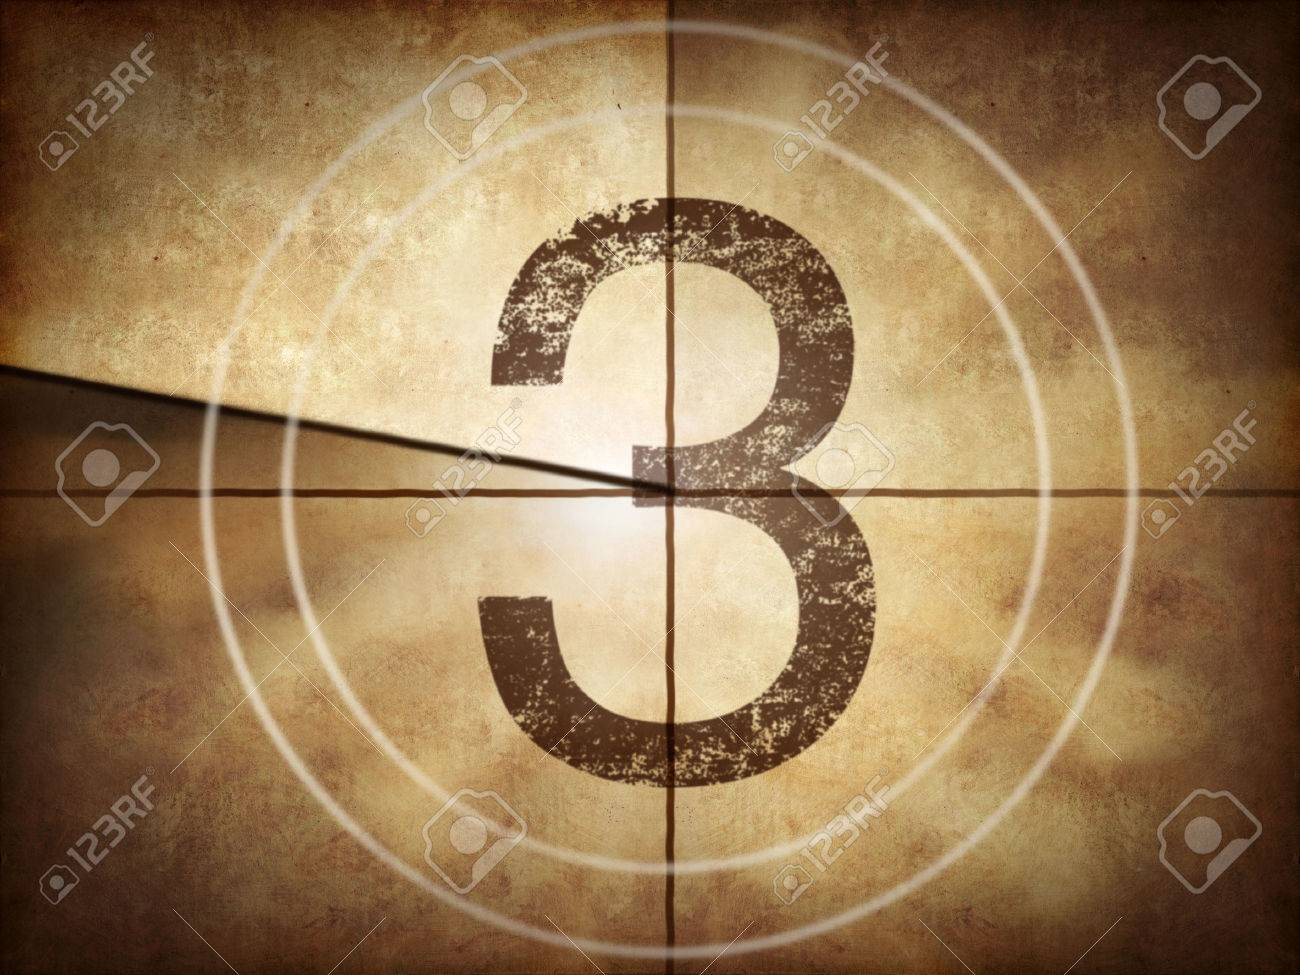 Old movie countdown with number 3 Stock Photo - 34710859